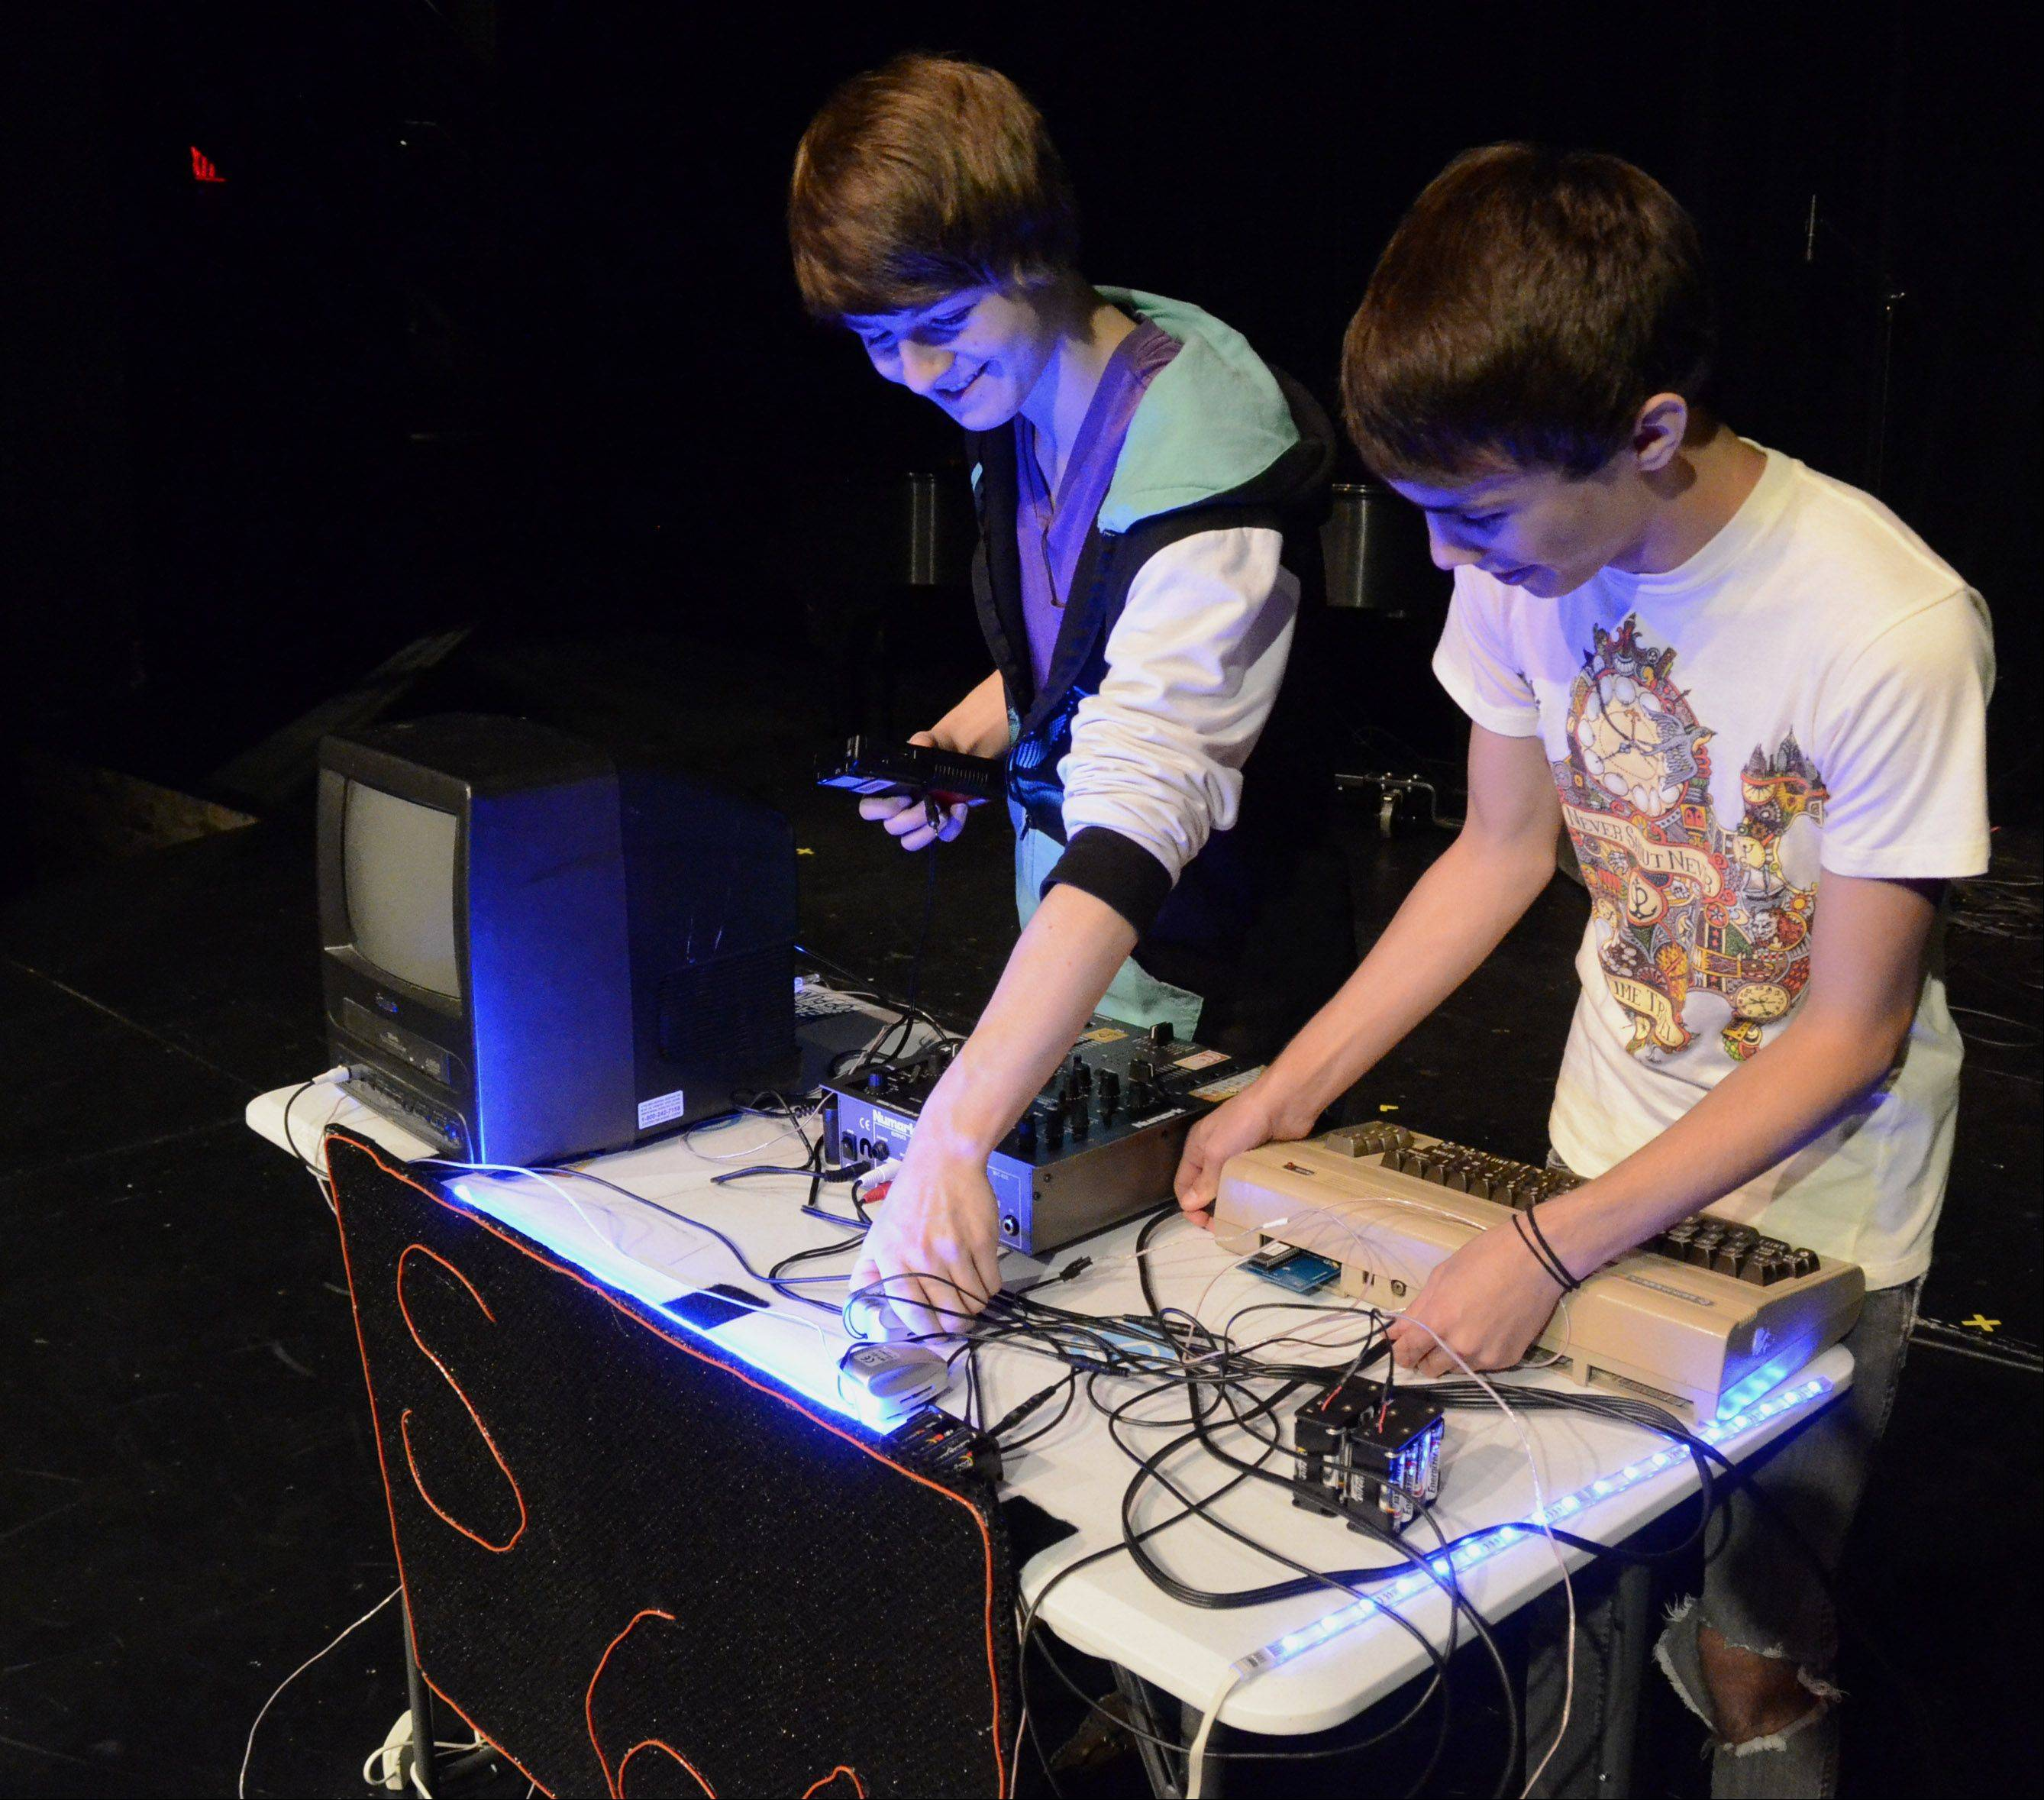 """Sophmore 64"" duo Jake Basala, 16, left, and Calvin Hughes, 17, both of LIndenhurst, preform music using a Commodore 64 and Game Boys ."